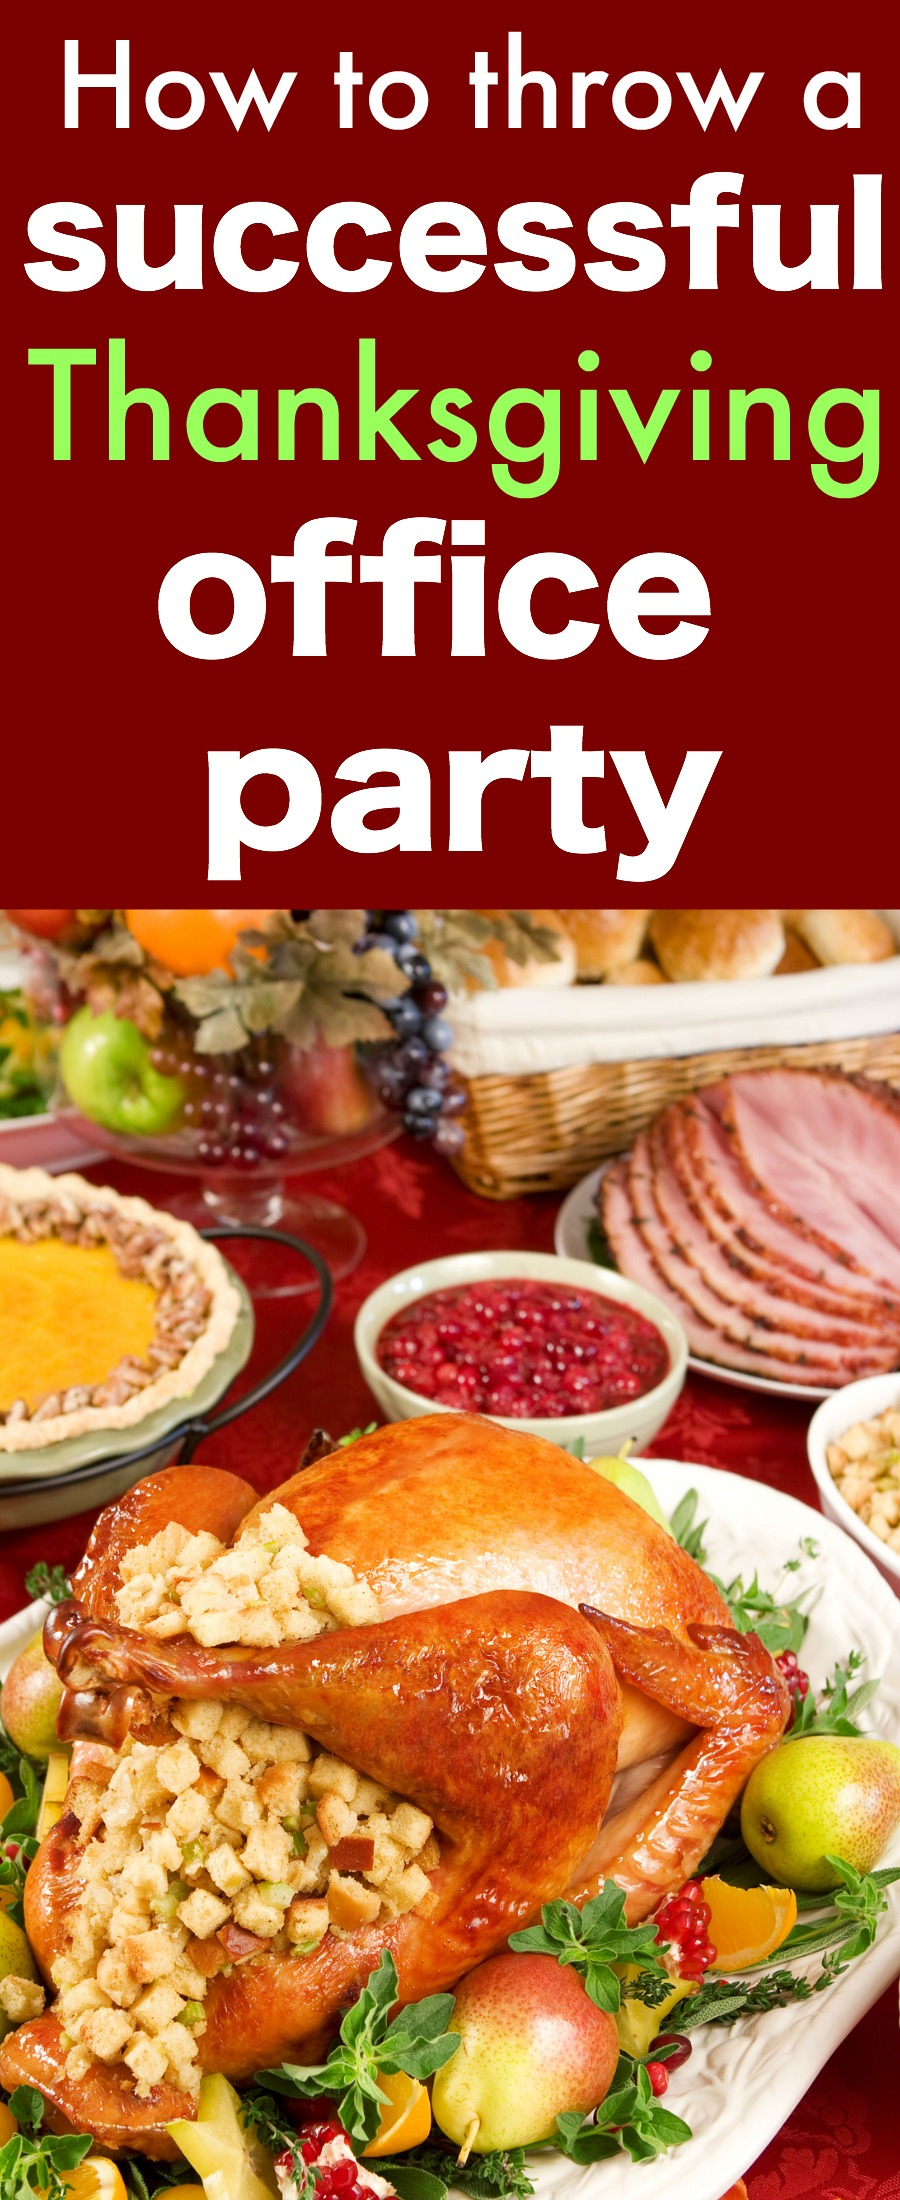 How to throw a successful thanksgiving office party my mommy style kristyandbryce Image collections